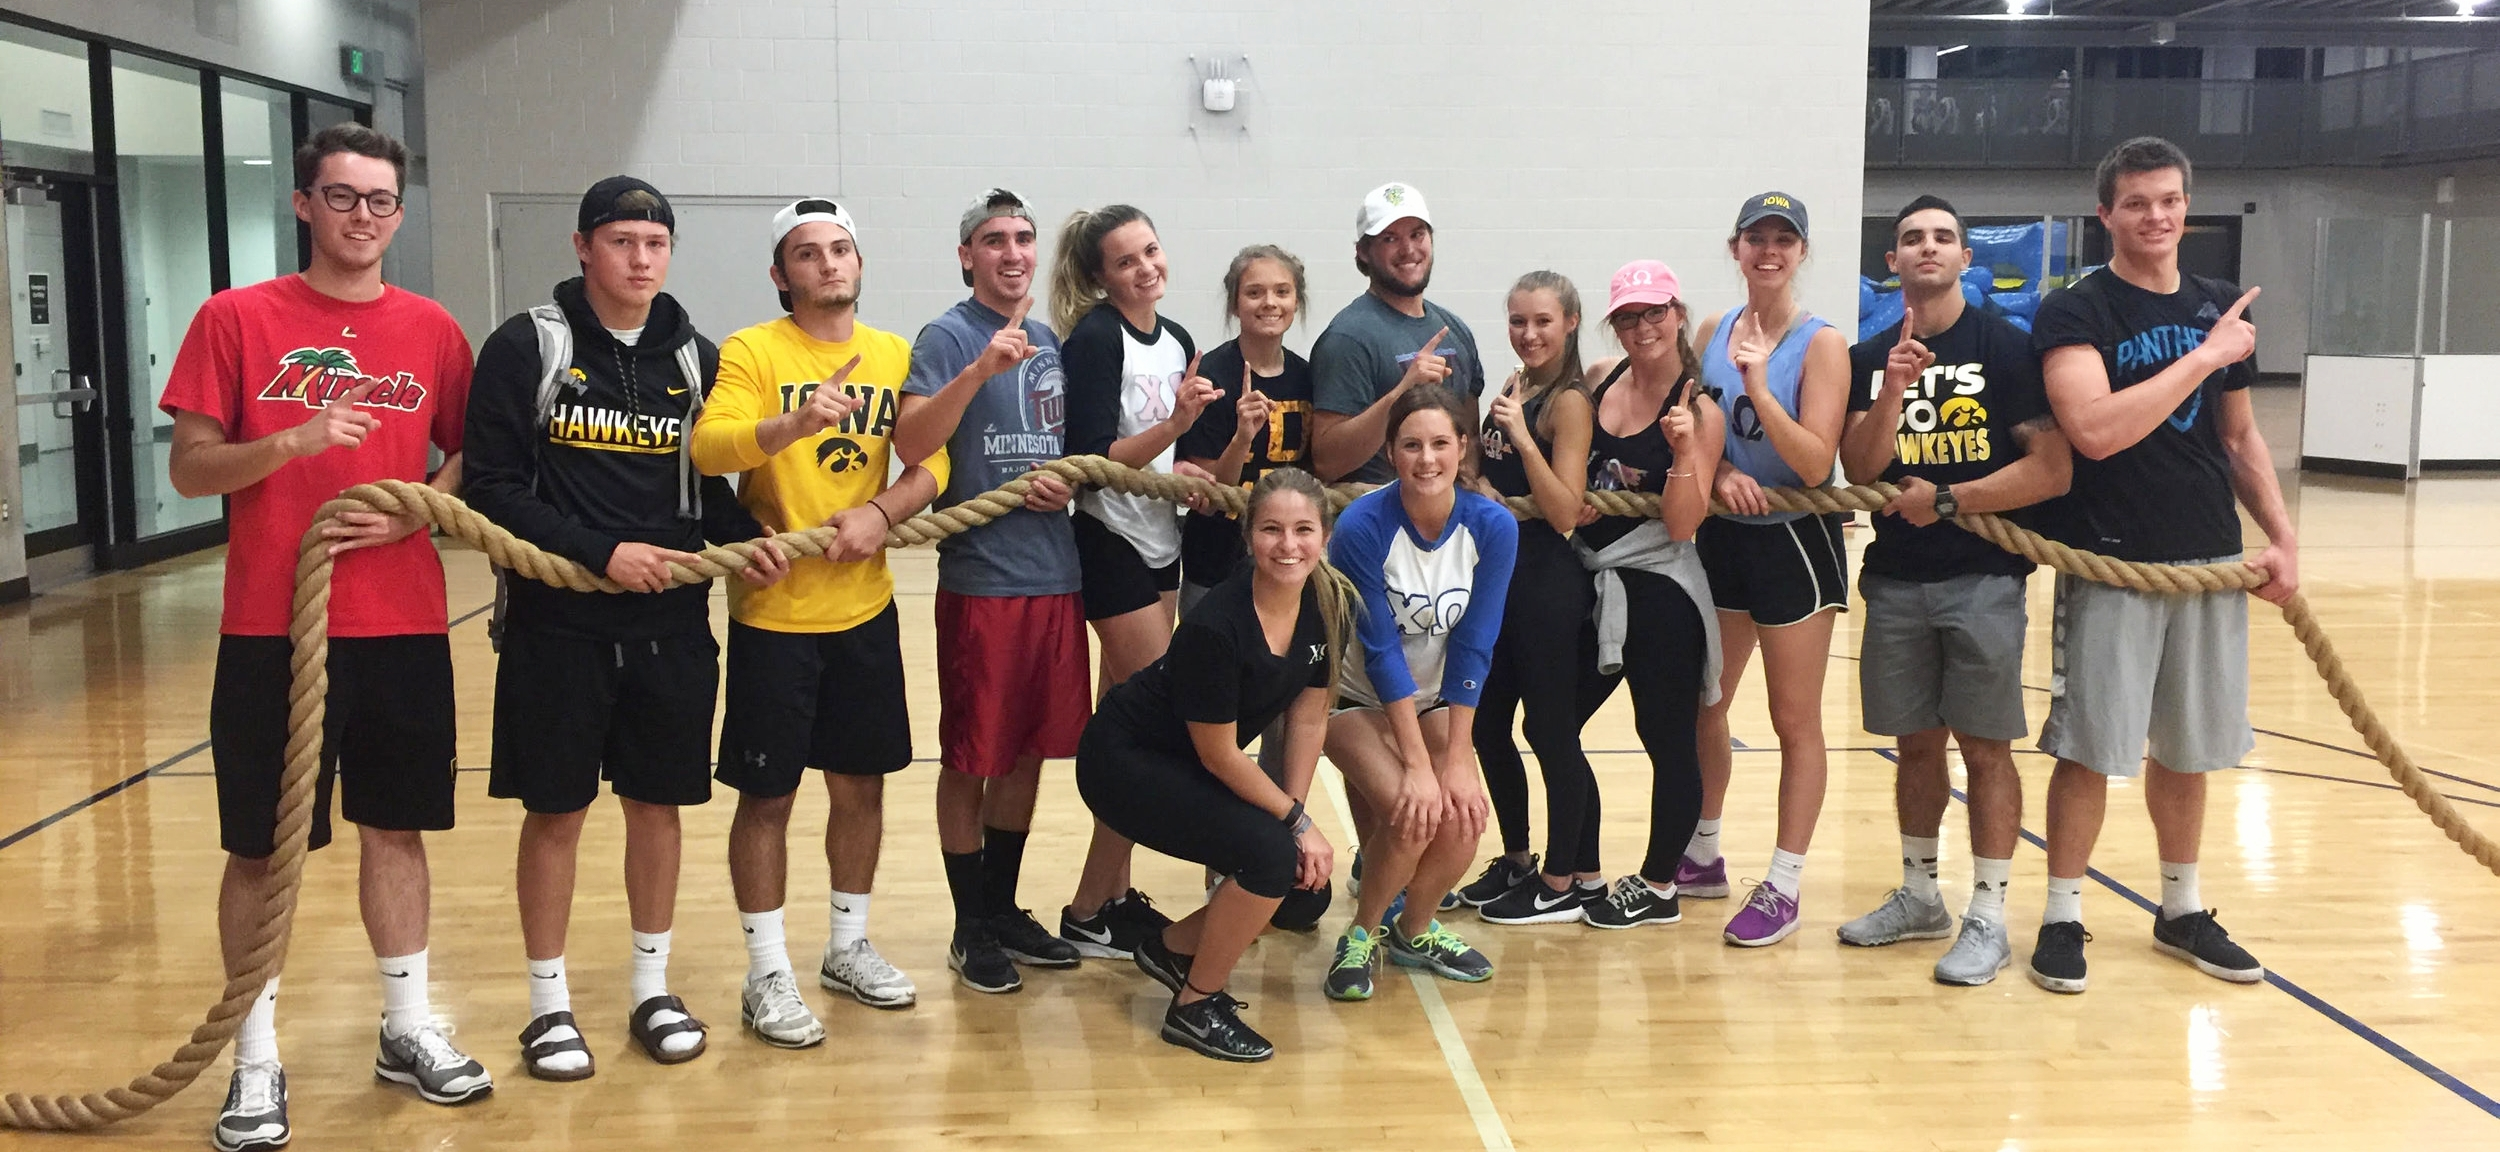 Tug-of-War Champions!